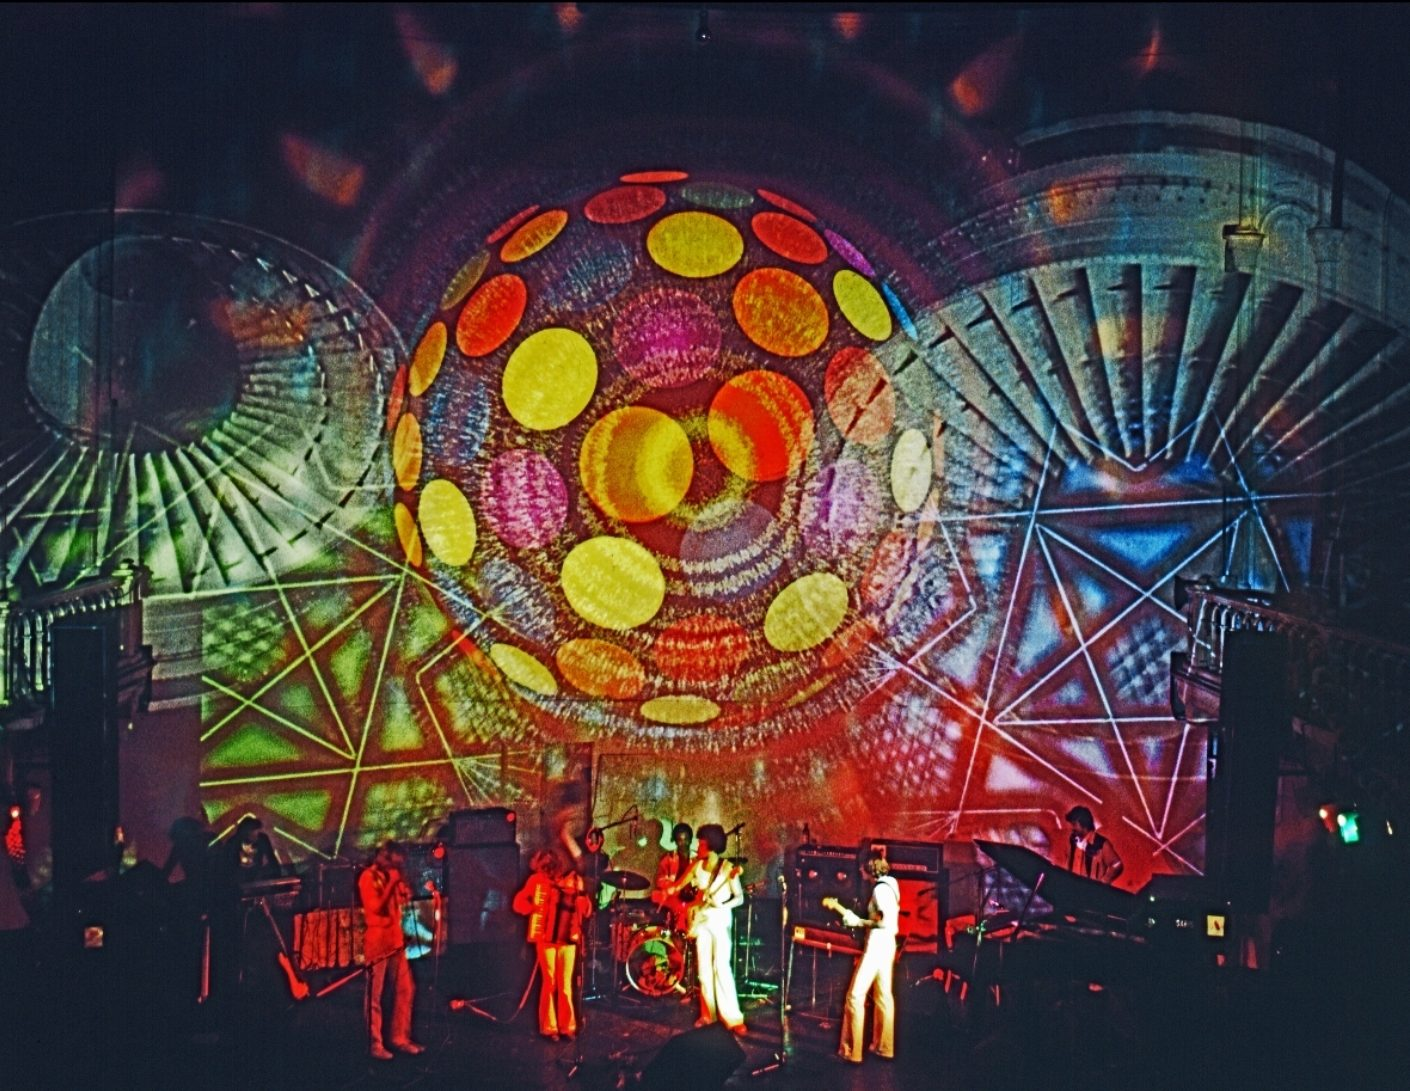 Lightshow at the youth center Paradiso (circa 1970)